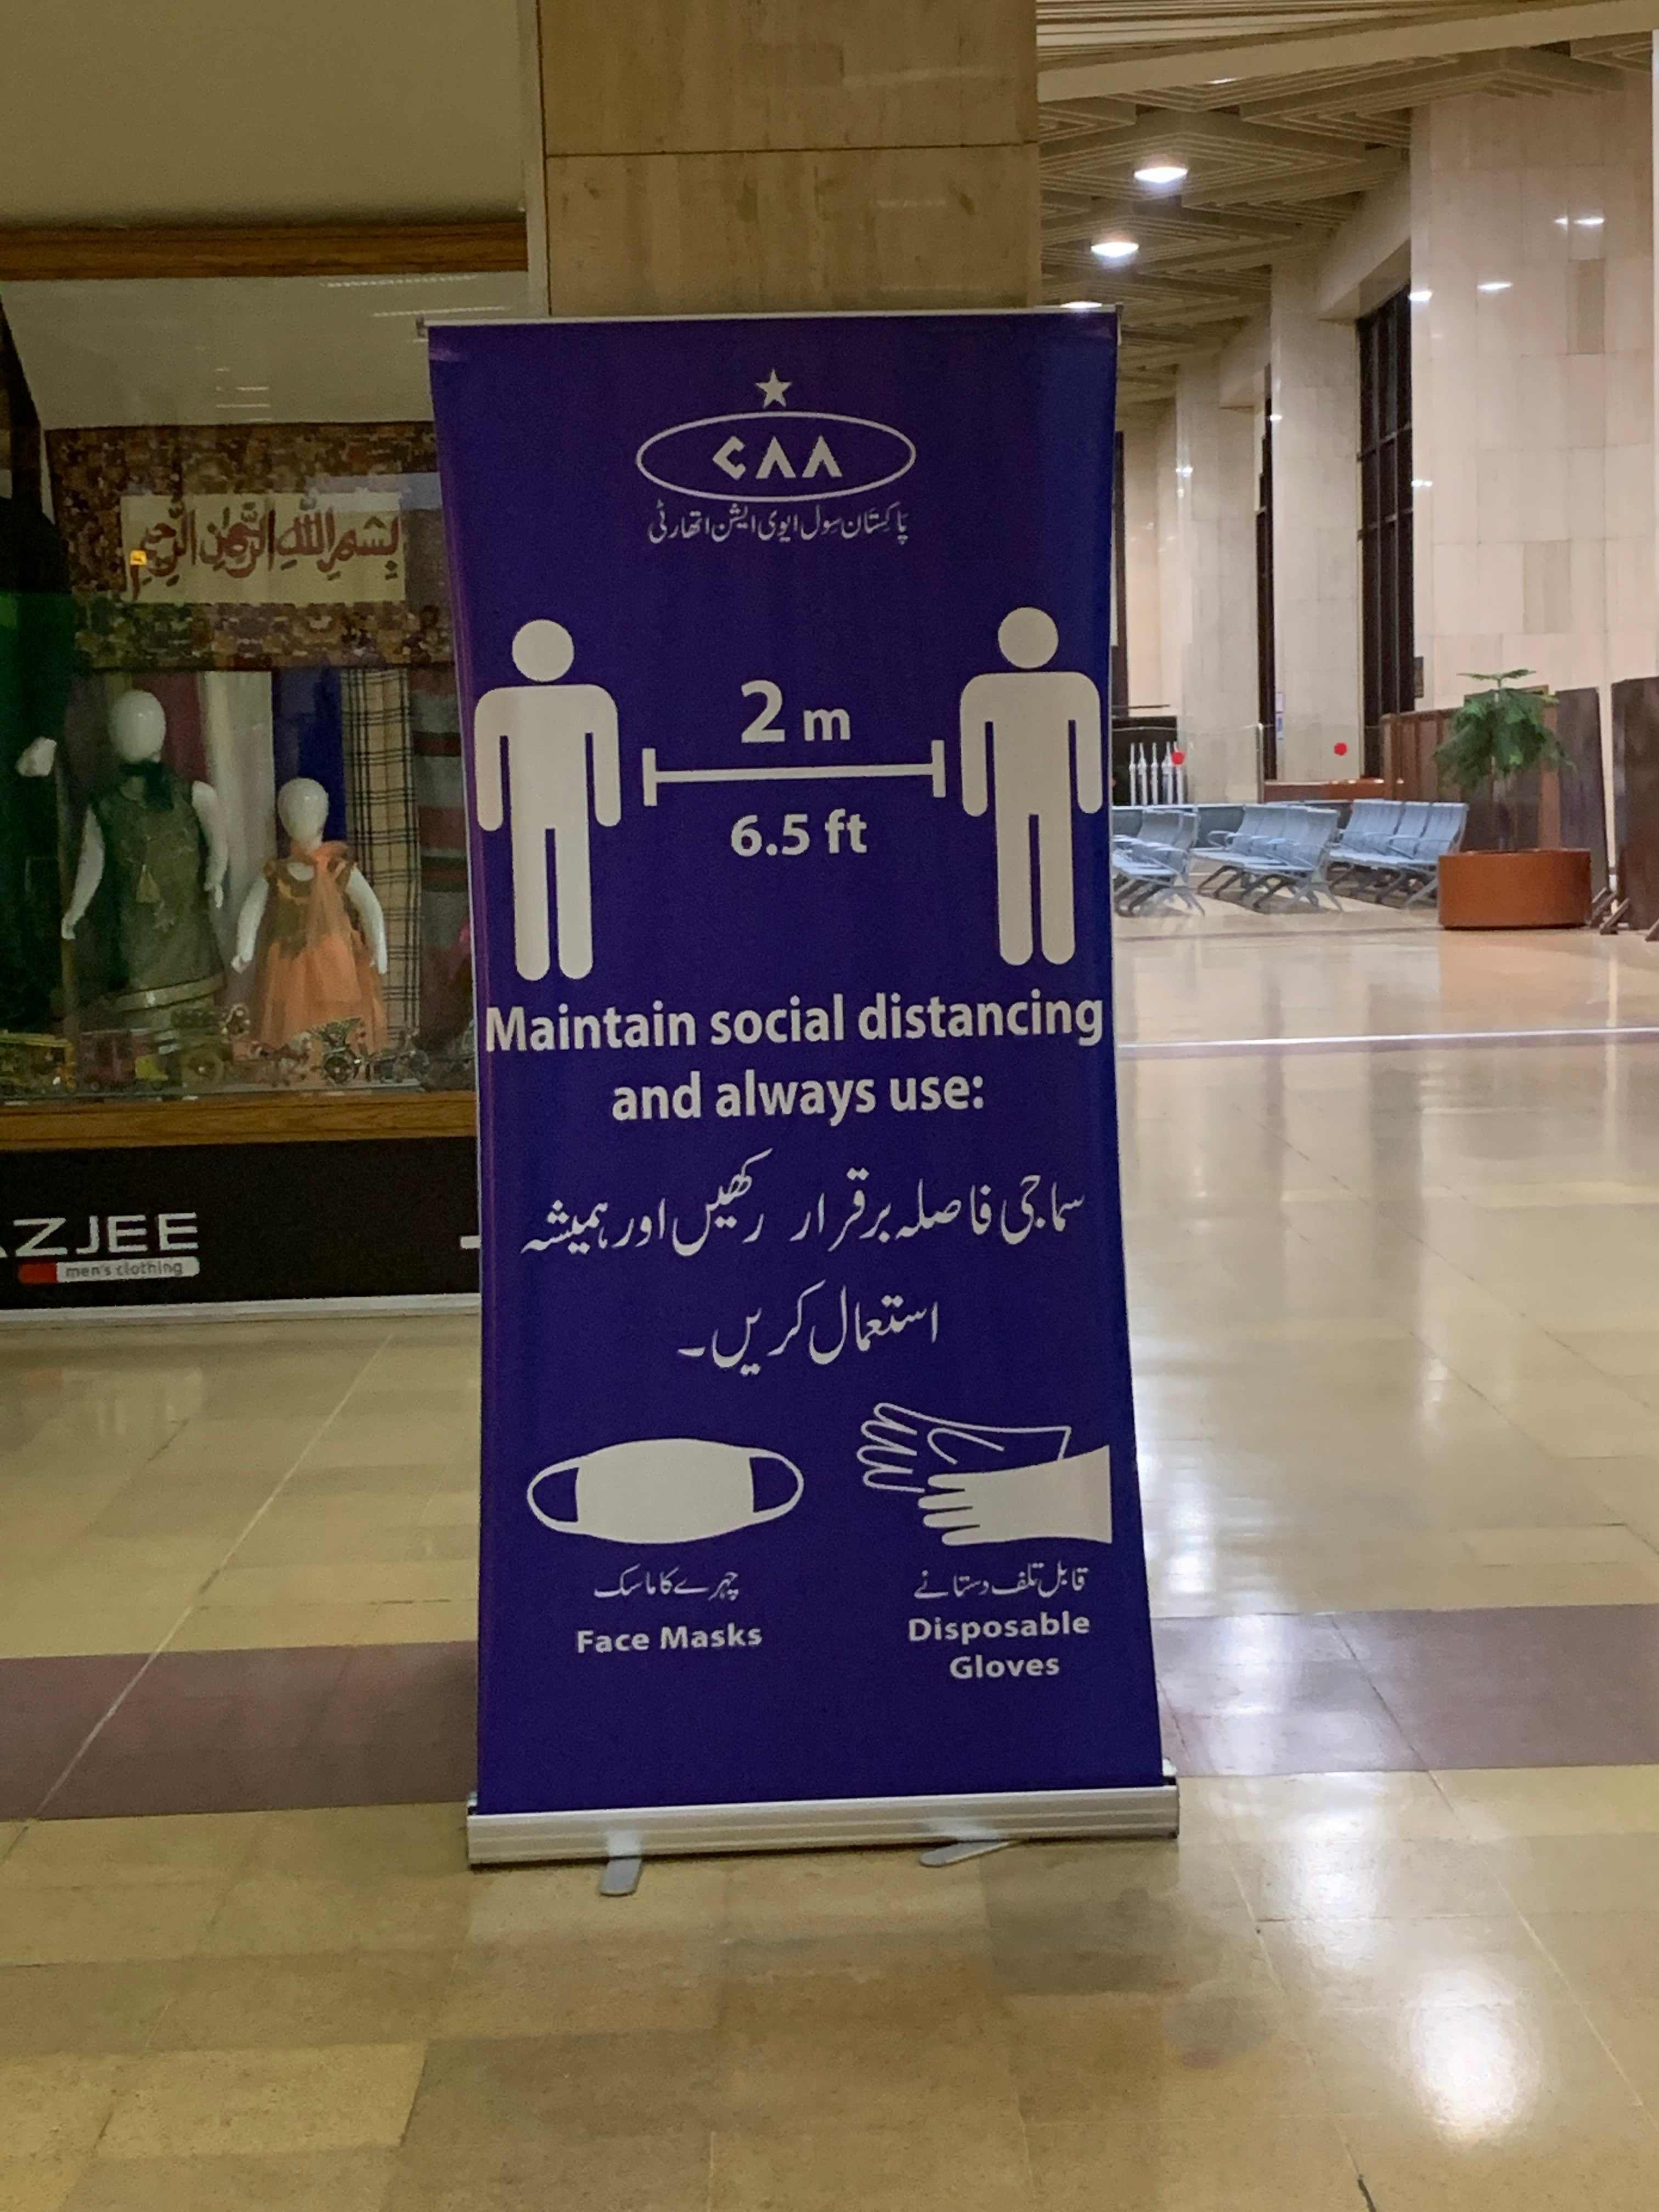 Posters by the Civil Aviation Authority have been put up at the airport, encouraging people to take precautions against the virus.